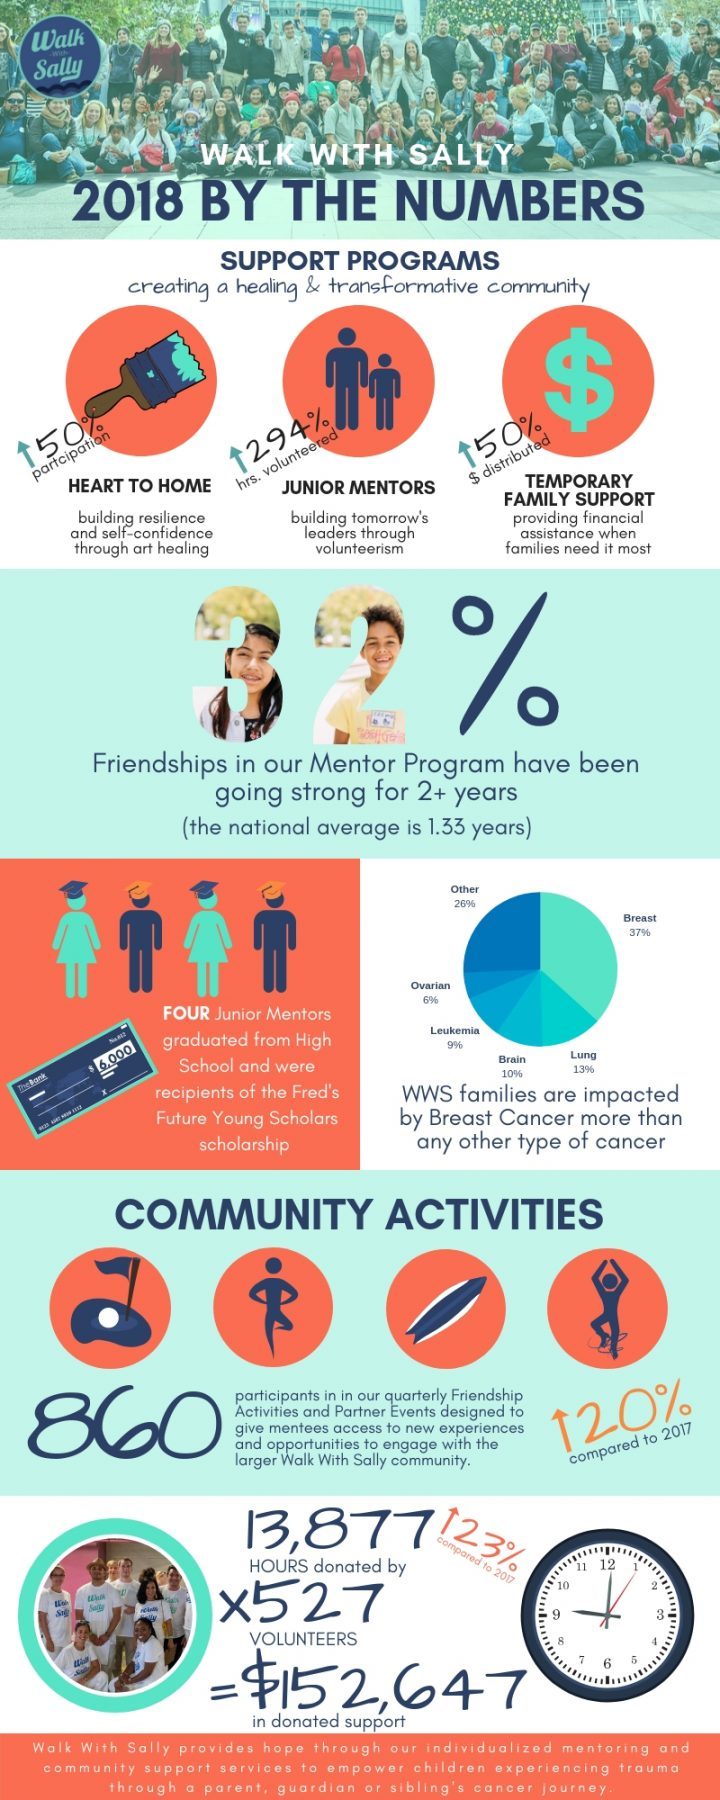 Walk With Sally's 2018 Accomplishments by the numbers including stats for our Friendships, Friendship Activities, Heart to Home, Junior Mentor, Temporary Family Support, Cancer Support, Community Activities and Volunteer Hours